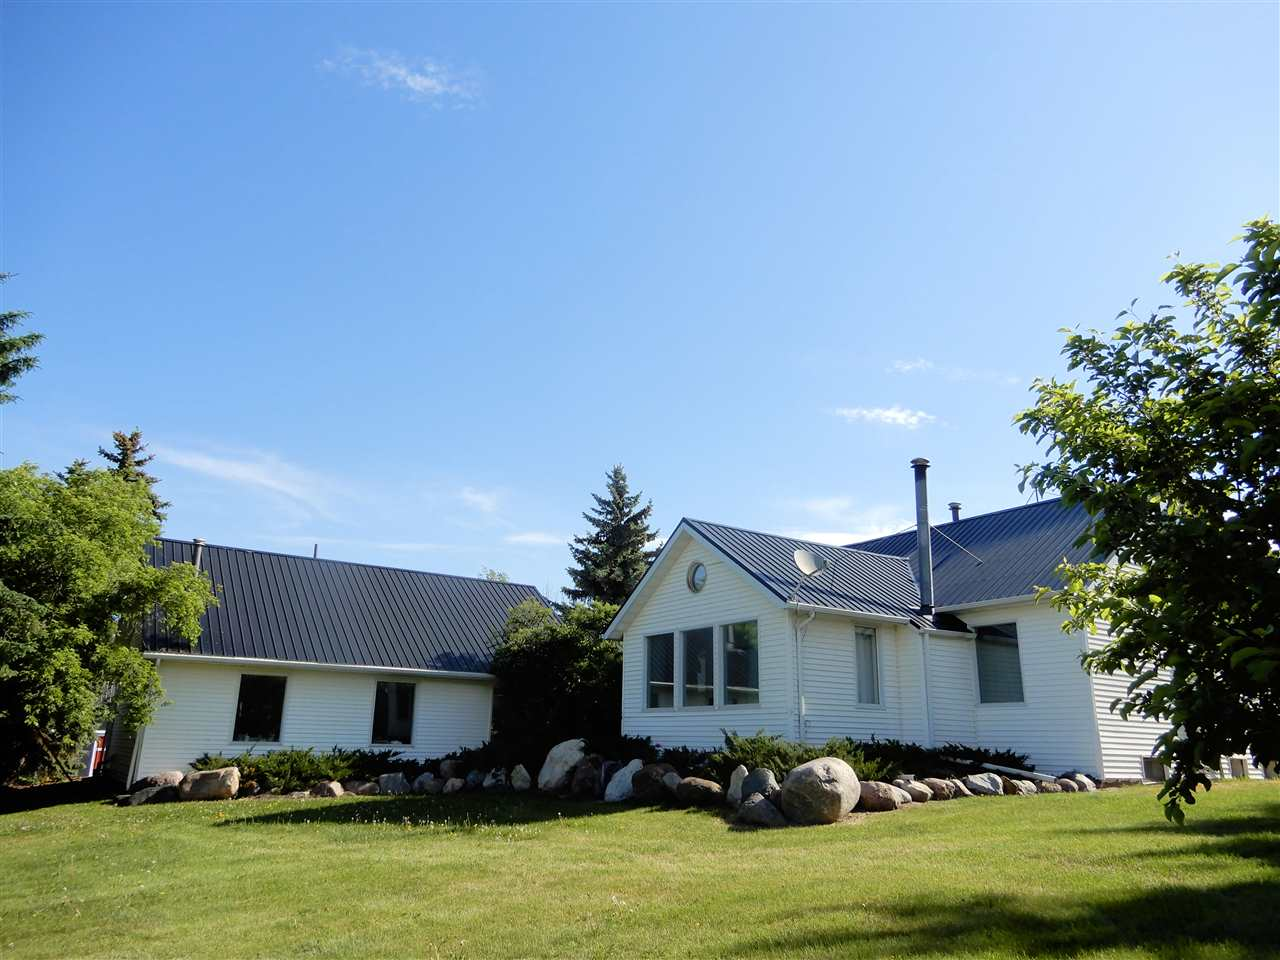 Photo 4: 55109 Range Road 260: Rural Sturgeon County House for sale : MLS® # E4068603